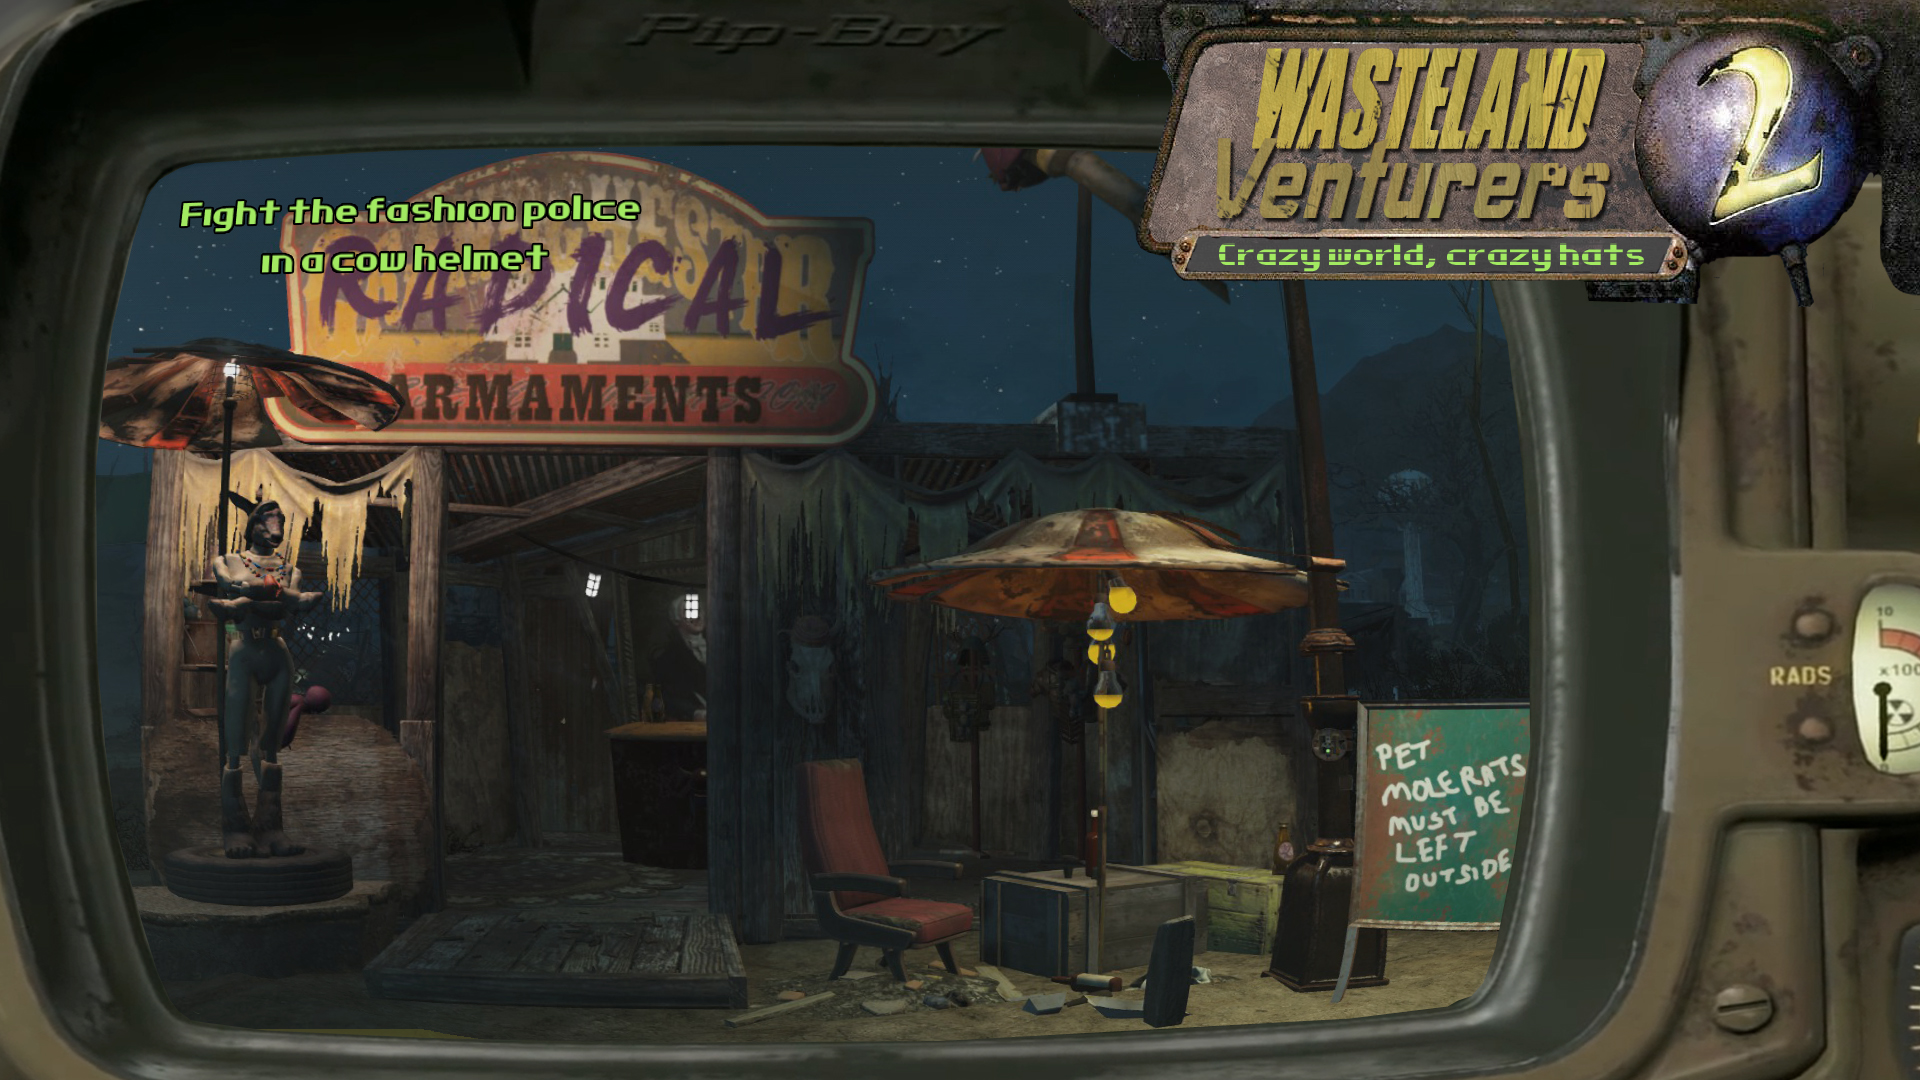 Wasteland Venturers 2 - Sim Settlements Addon Pack at Fallout 4